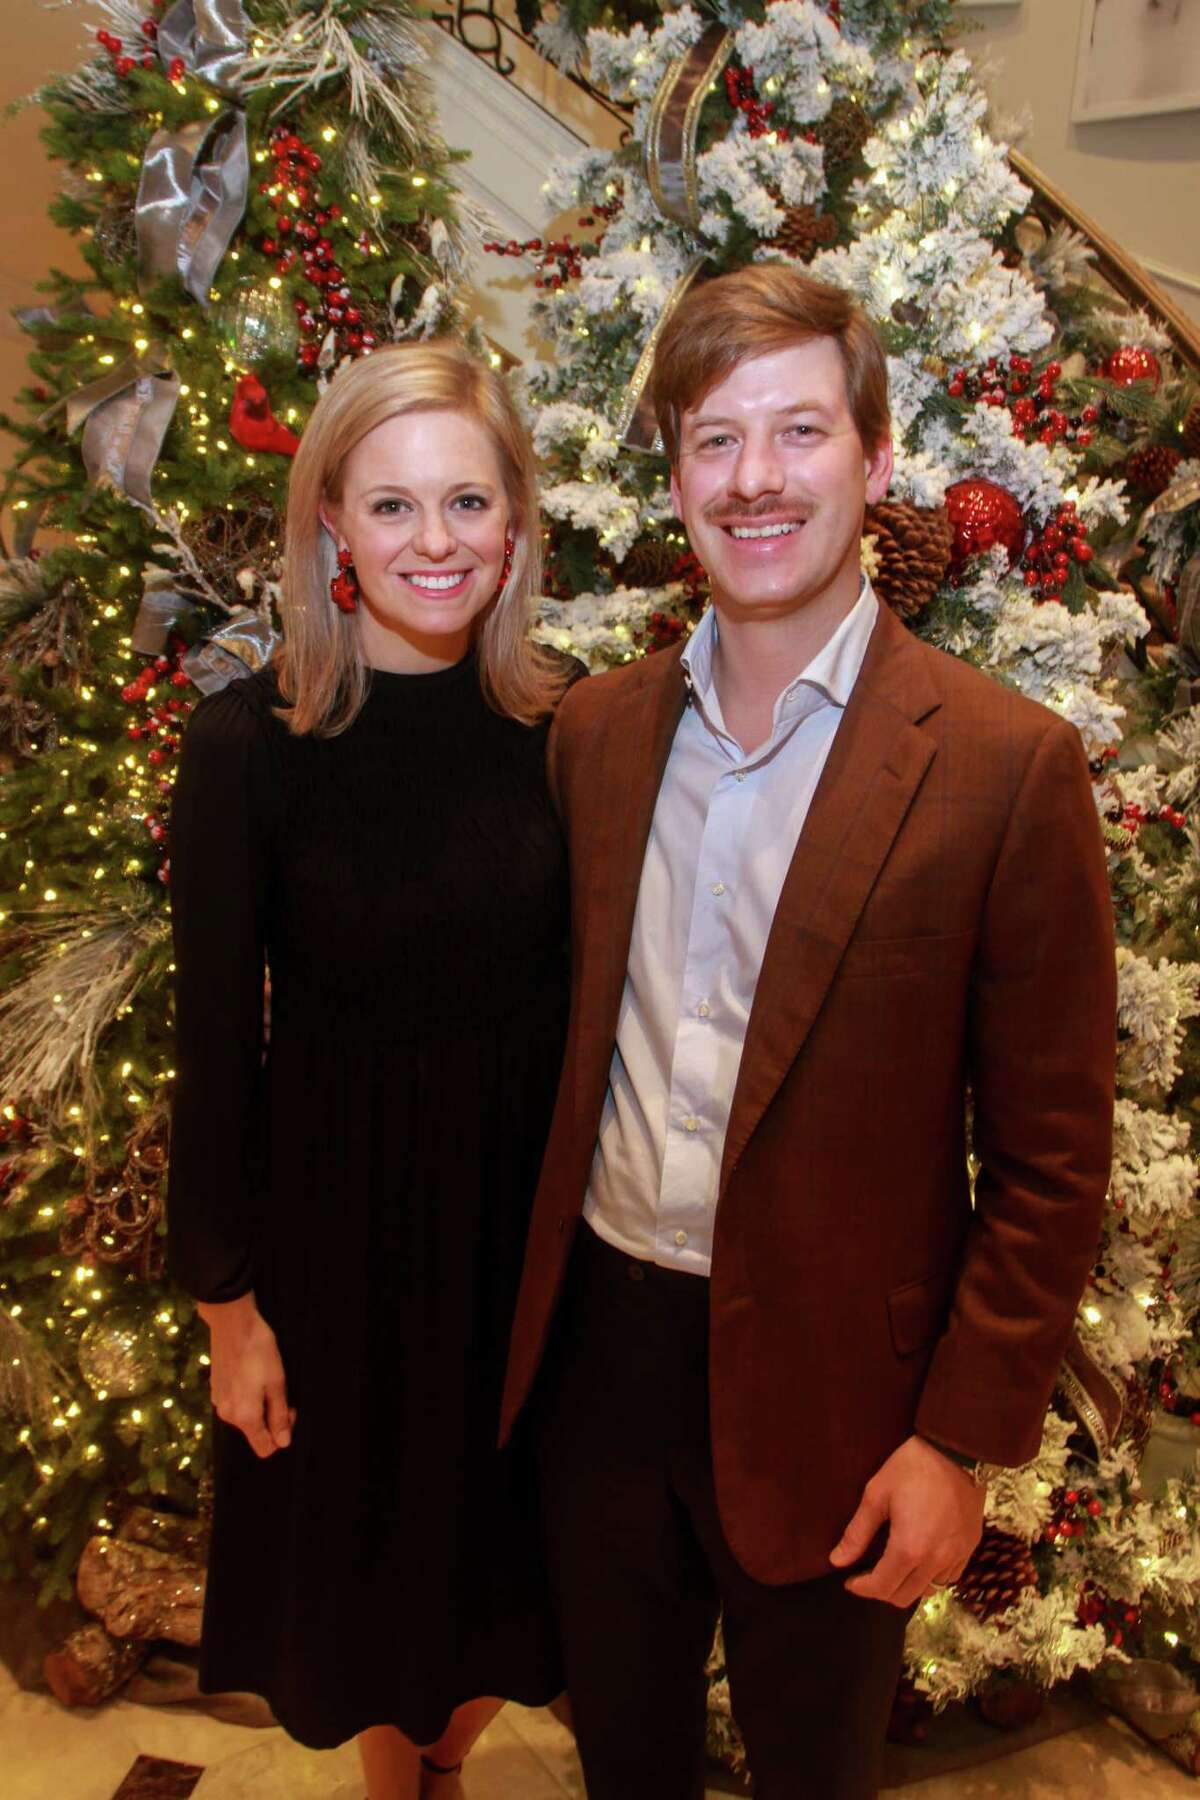 Sarah and Travis Covington at Santa's Elves, benefiting MD Anderson, in Houston on December 5, 2019.